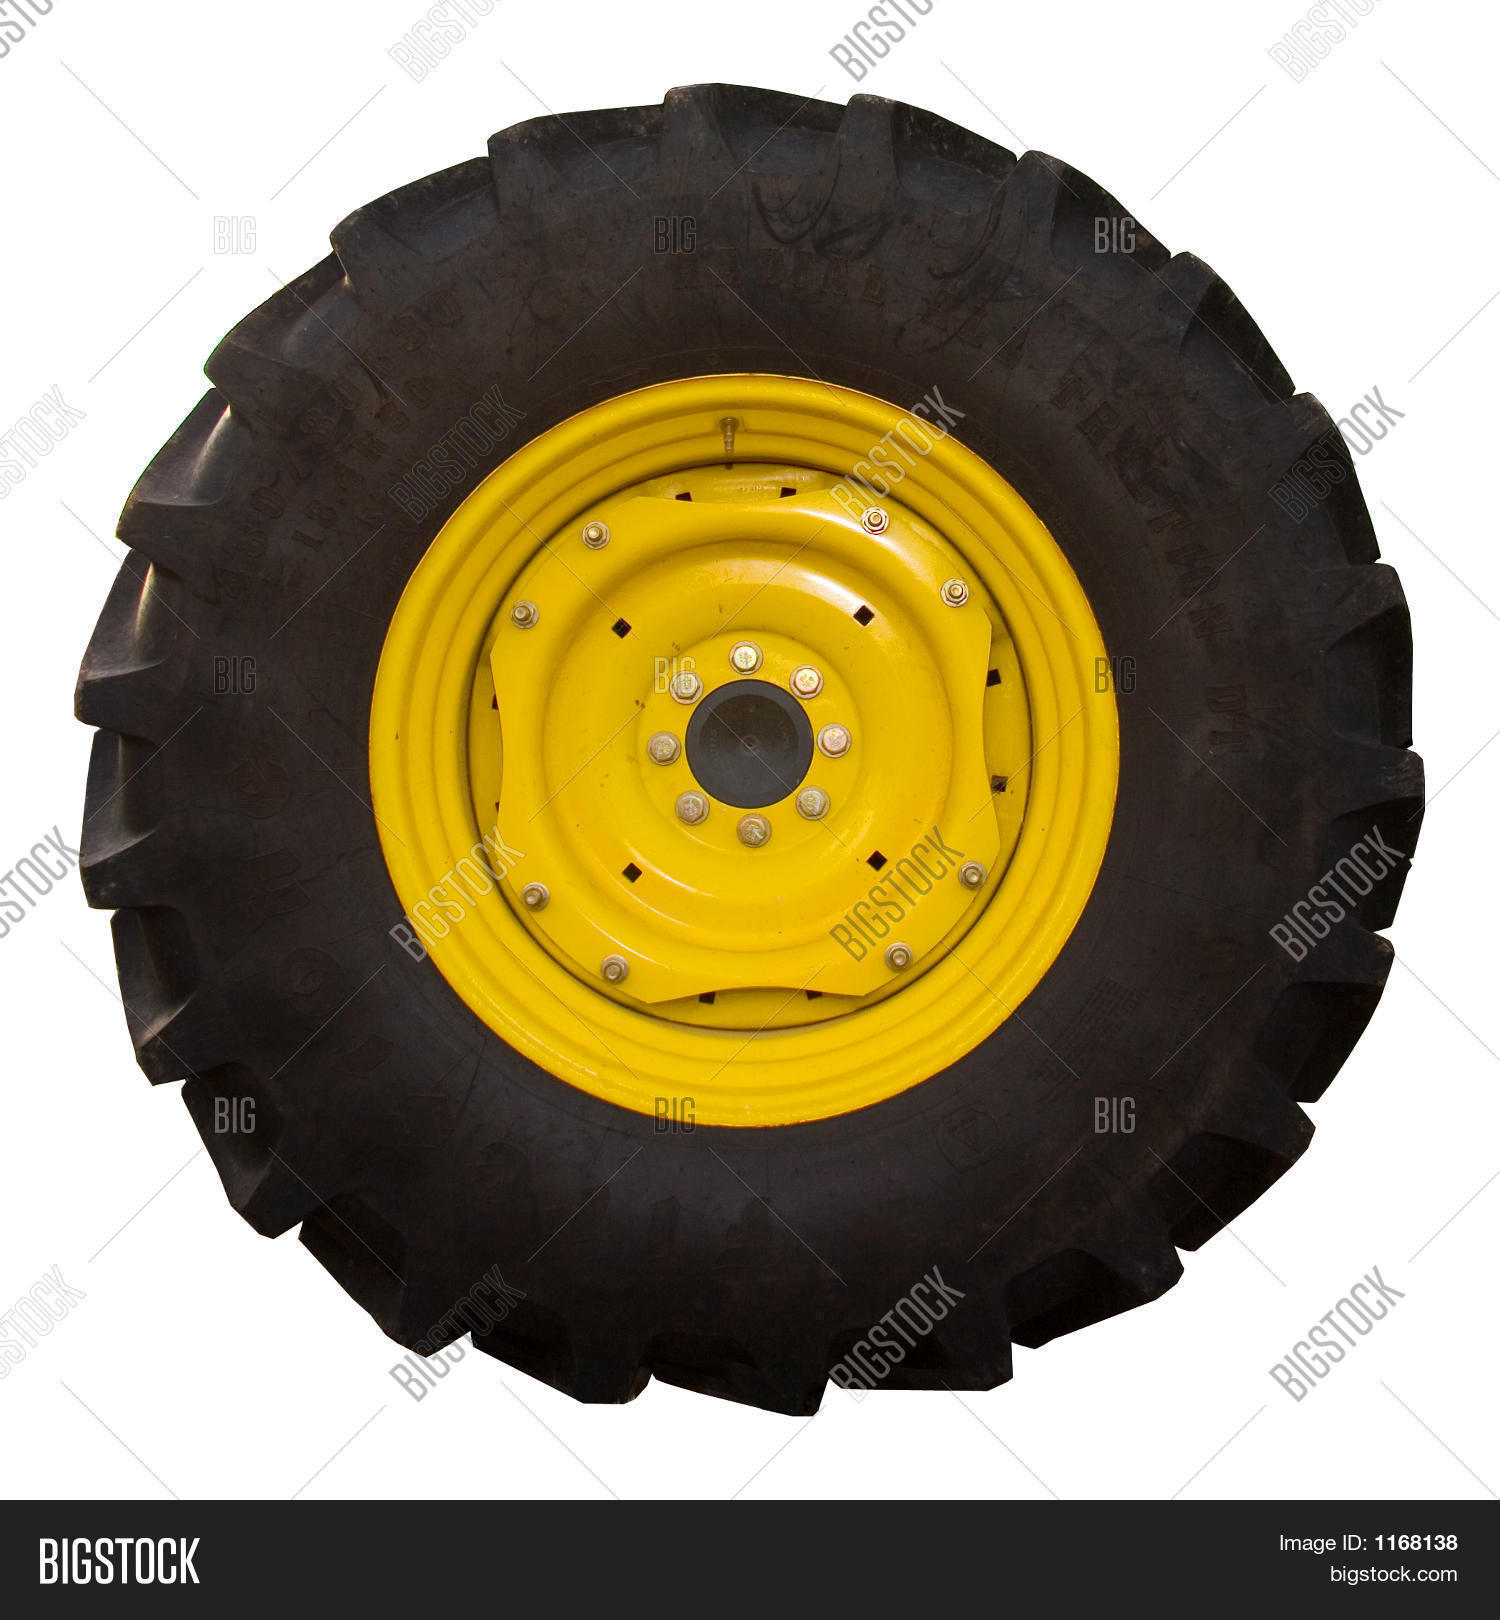 Tractor tire image photo bigstock for Big tractor tires for free